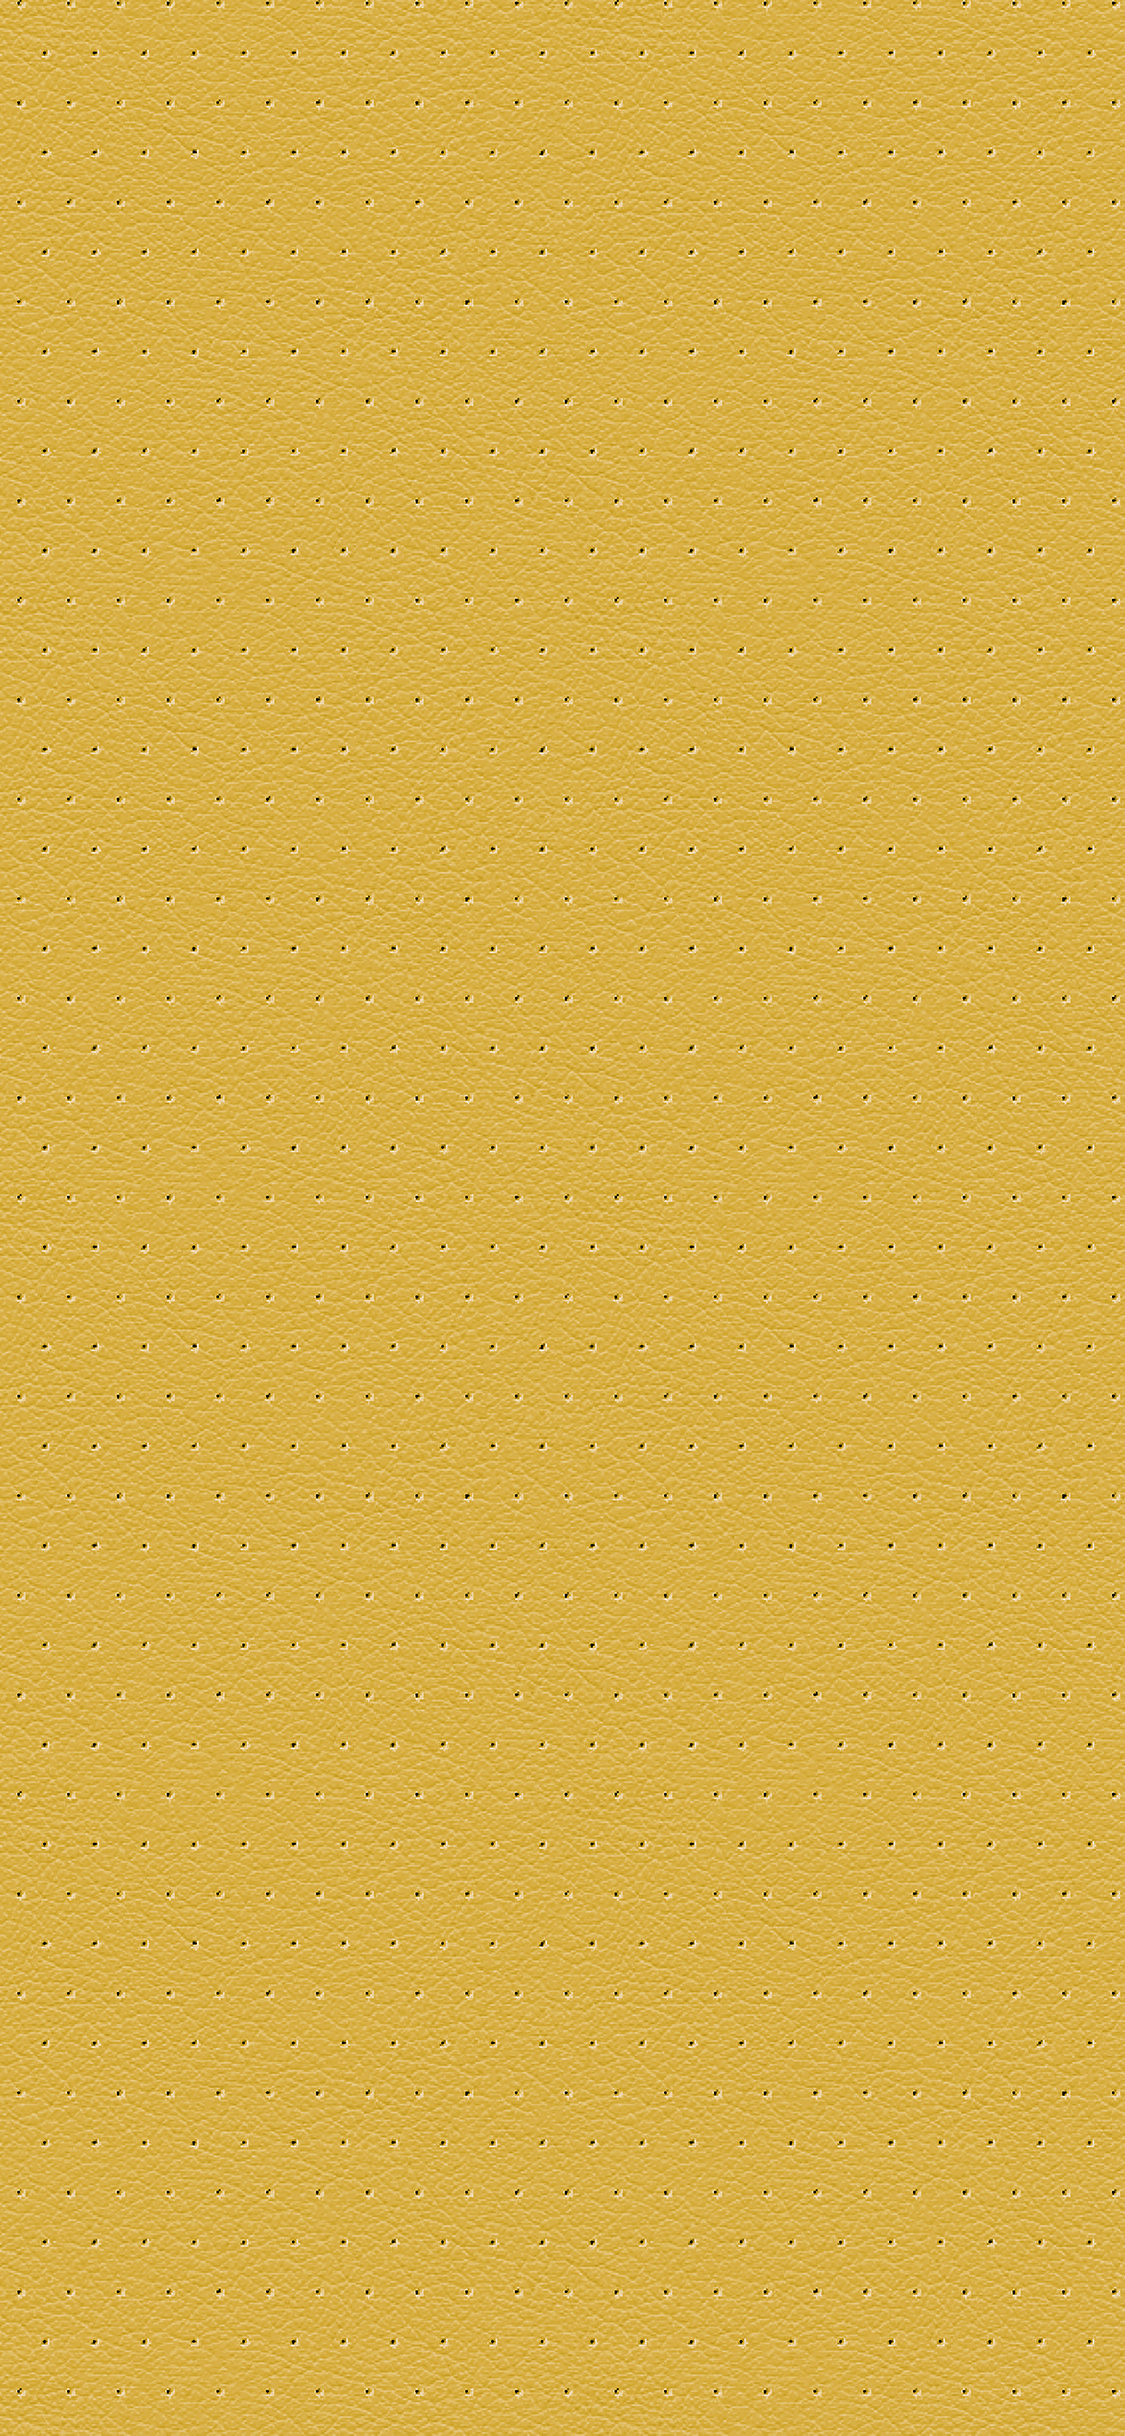 iPhoneXpapers.com-Apple-iPhone-wallpaper-vb17-wallpaper-perforated-gold-pattern